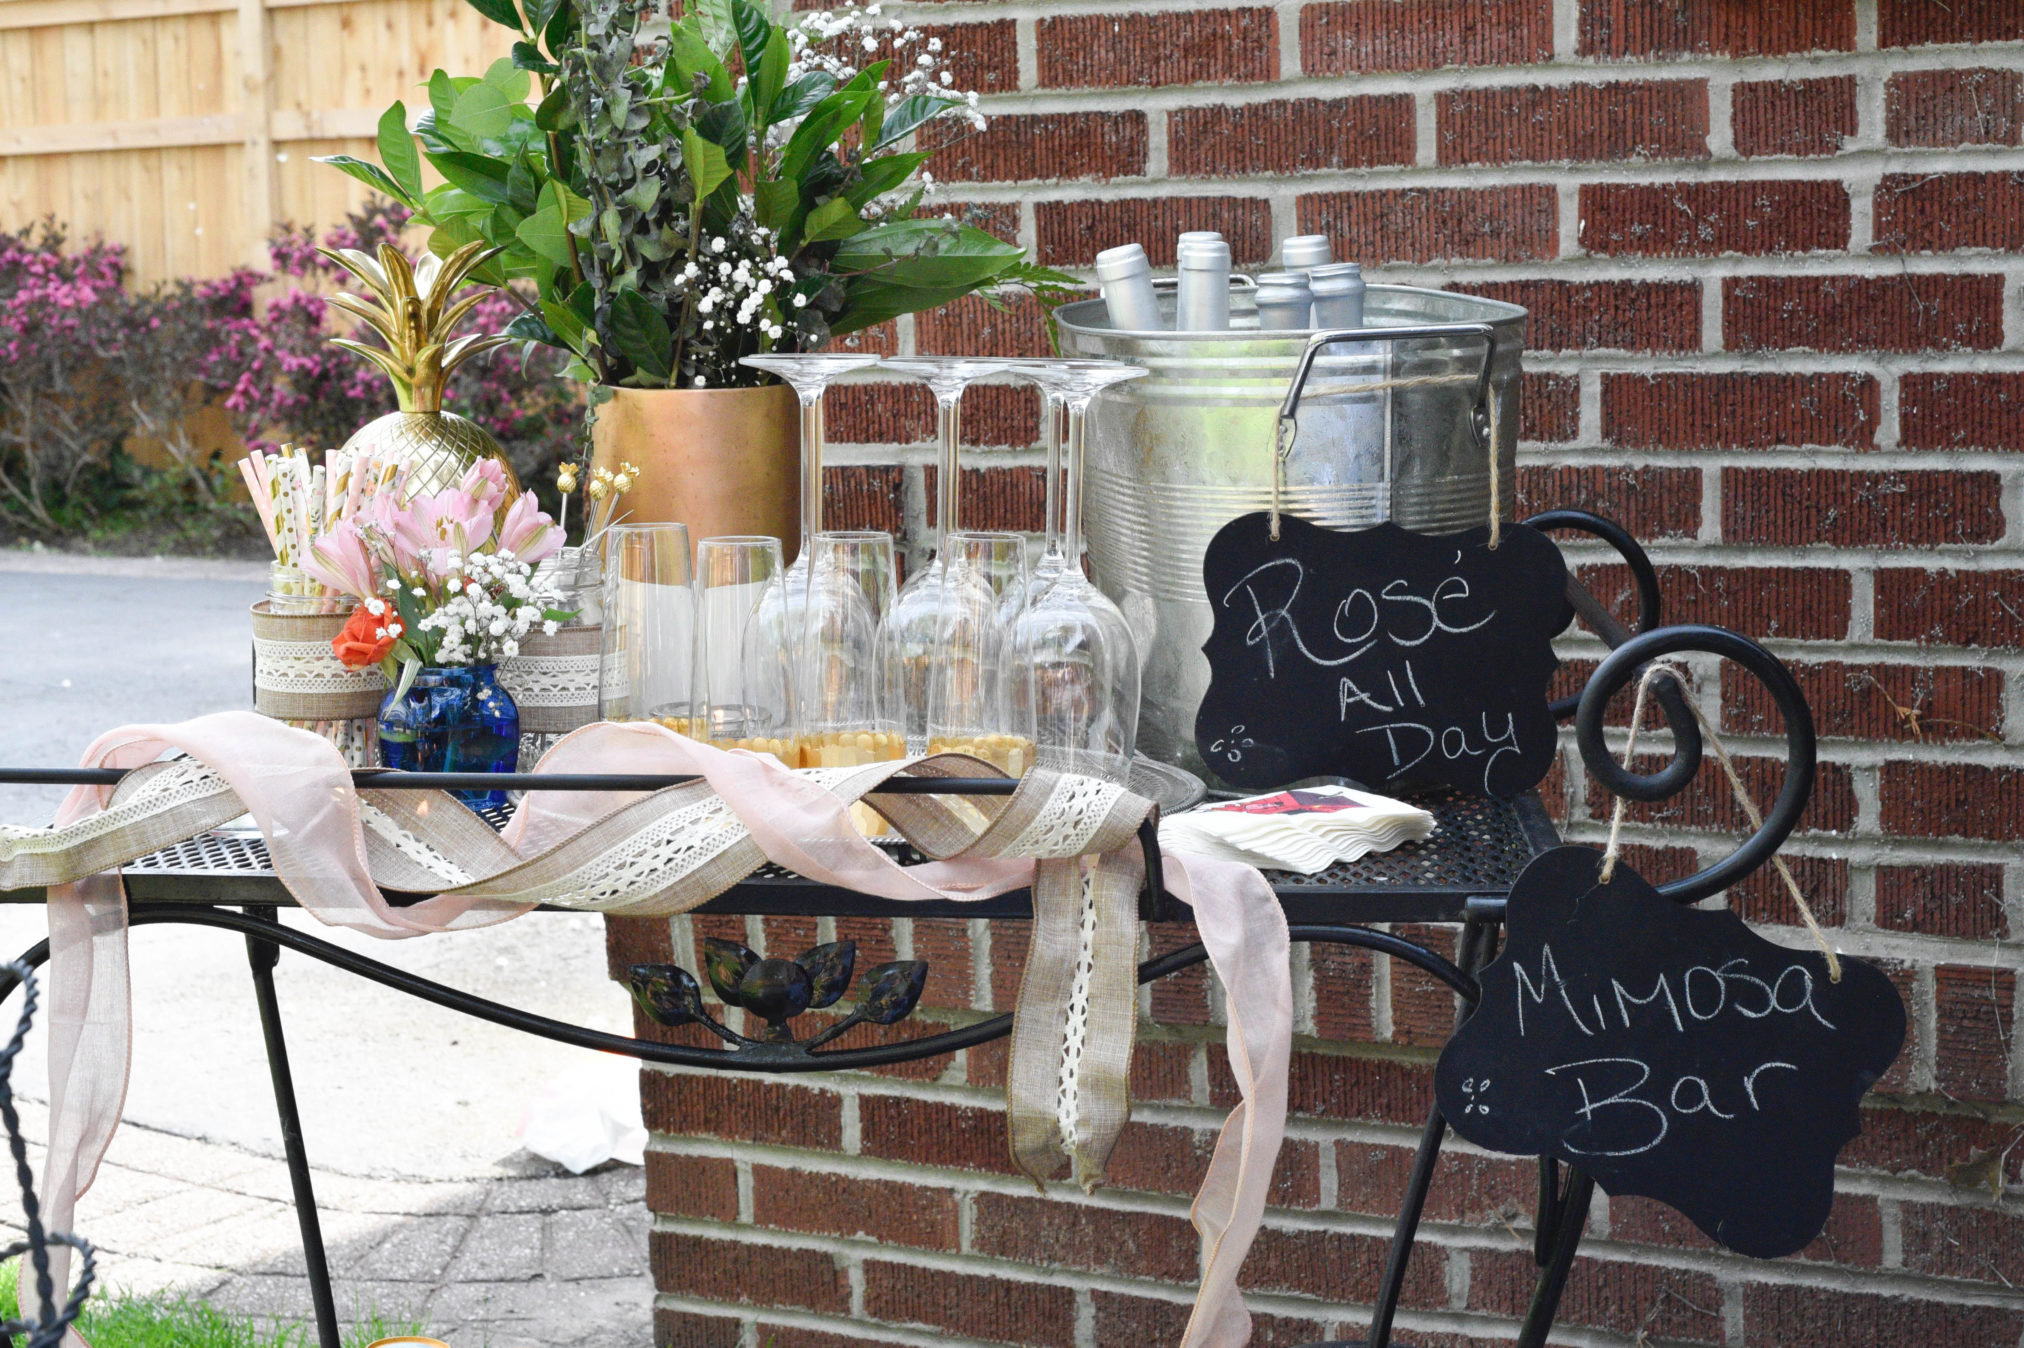 Hosting a ladies brunch or a vintage inspired party, here are tips on how to style a vintage inspired tablescape, see more at www.homewithkeki.com #vintage #tablescape #summerparties